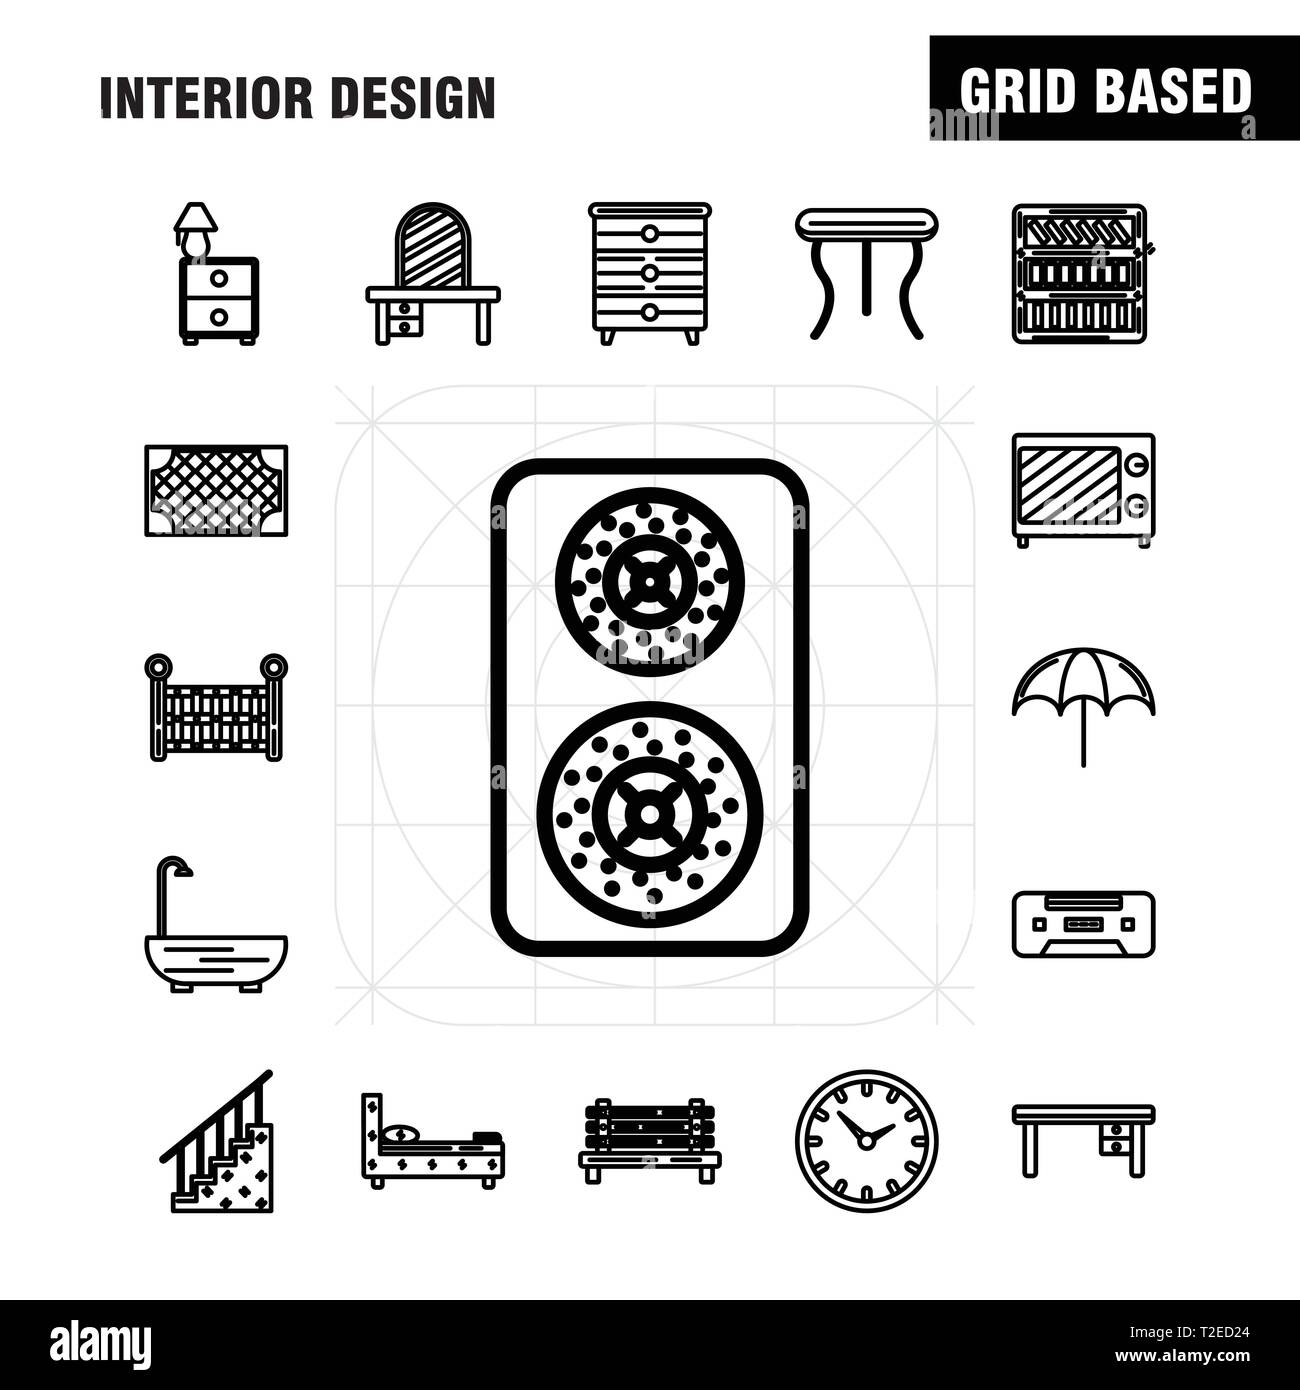 Ux Plug Interior Design Line Icons Set For Infographics Mobile Ux Ui Kit